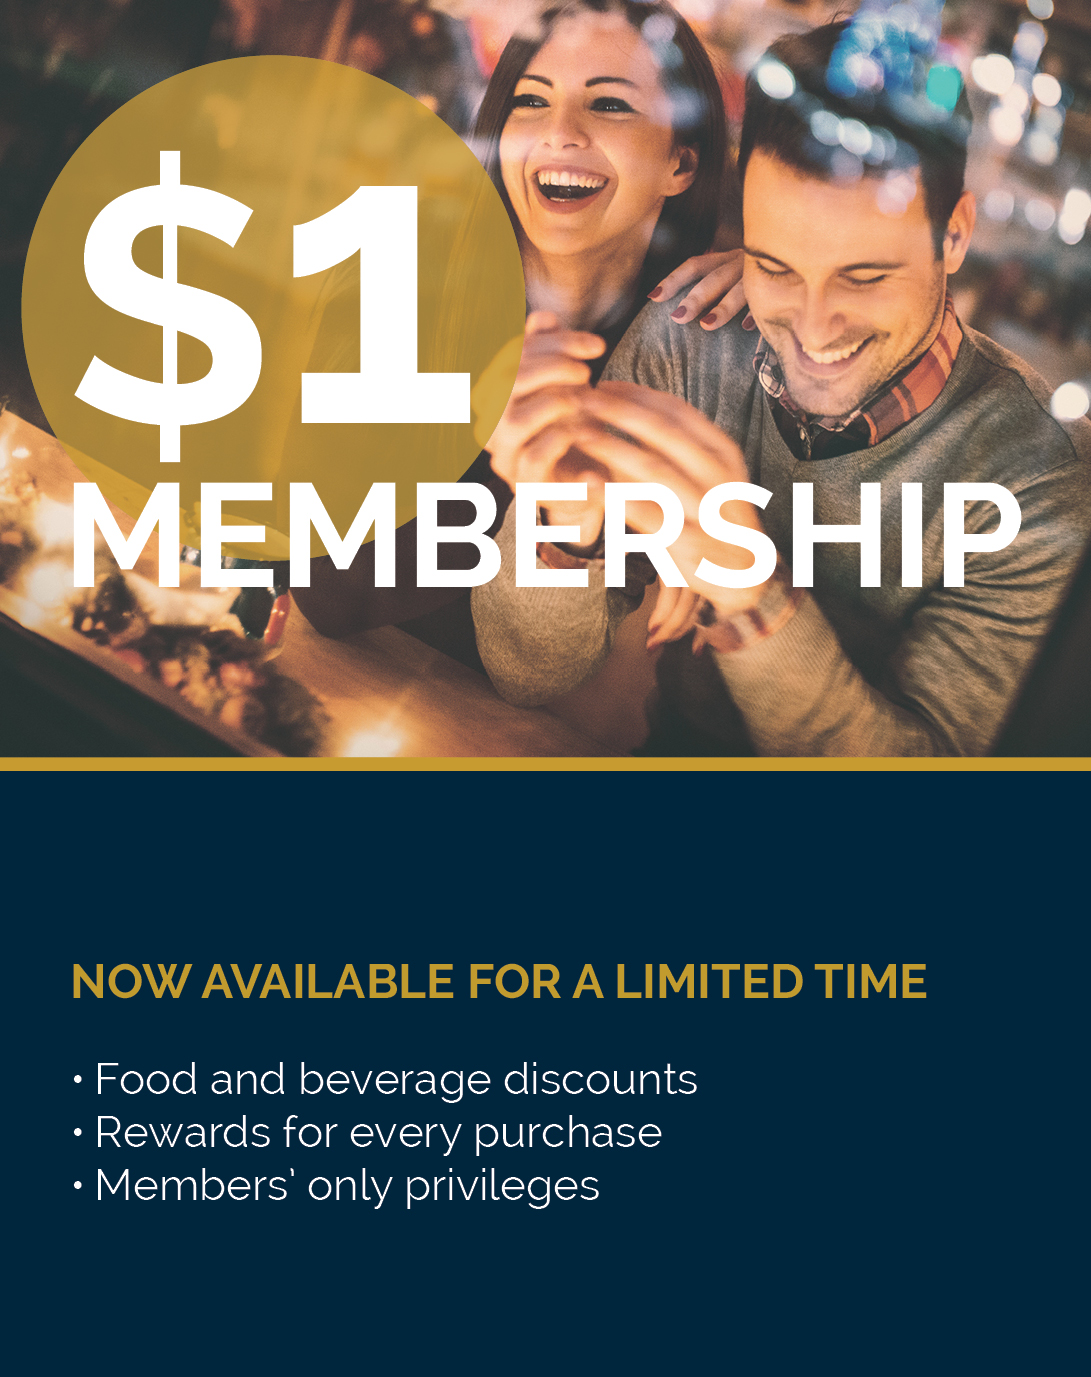 $1 Membership Limited Time Only